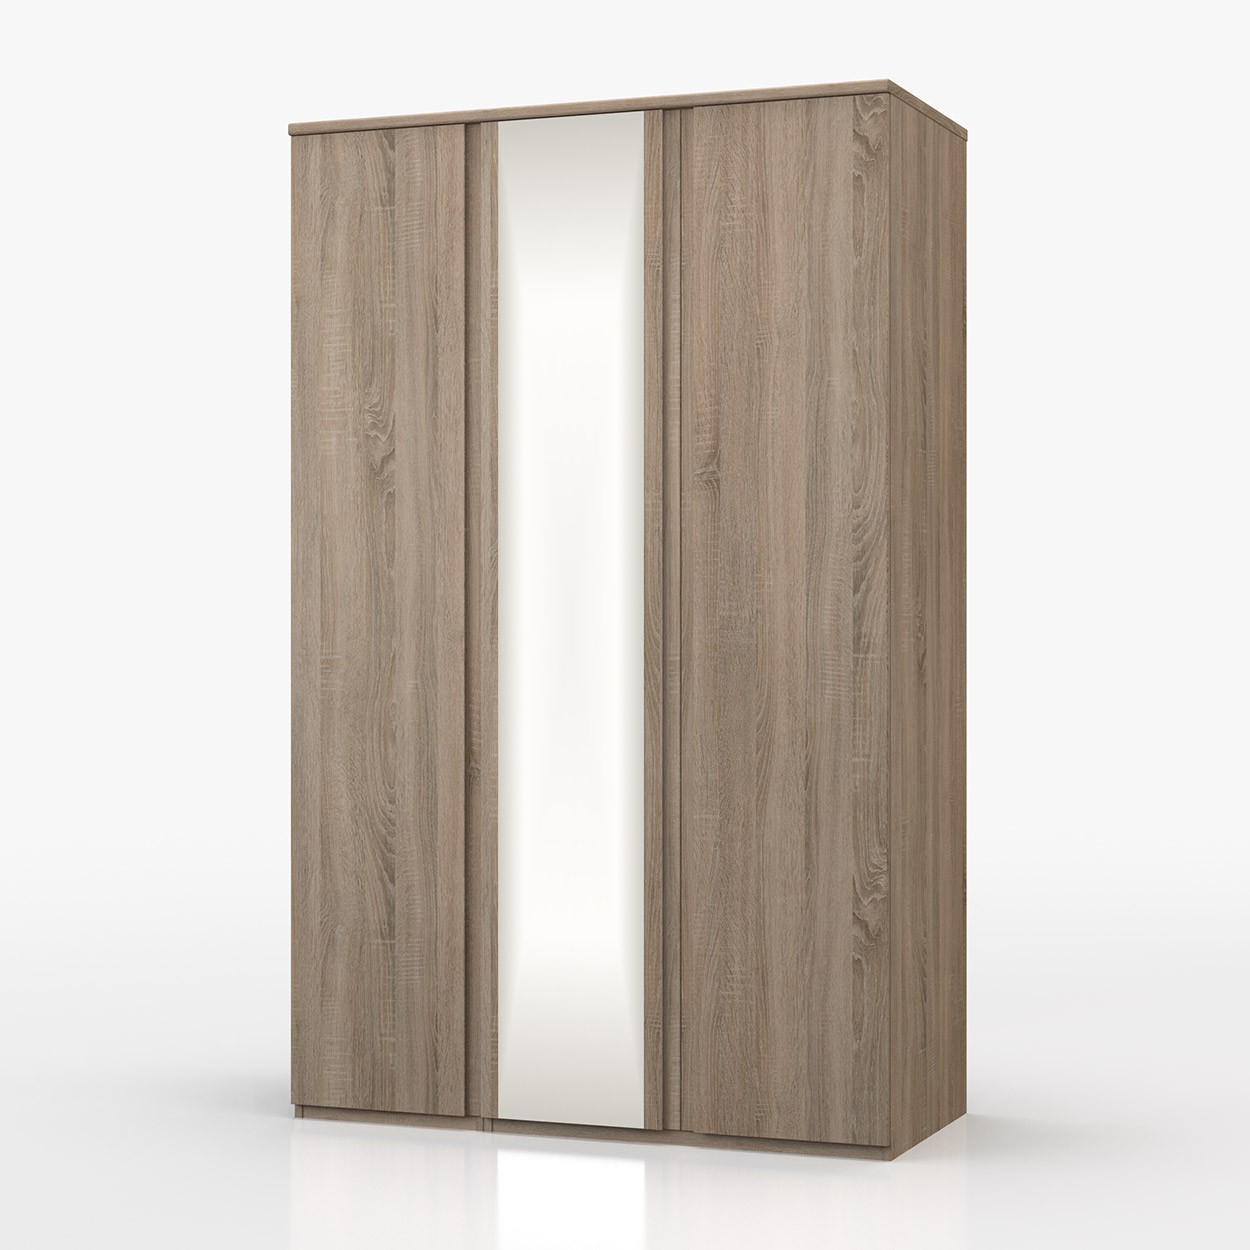 Avenue Truffle Oak 3 Door Wardrobe With Mirror